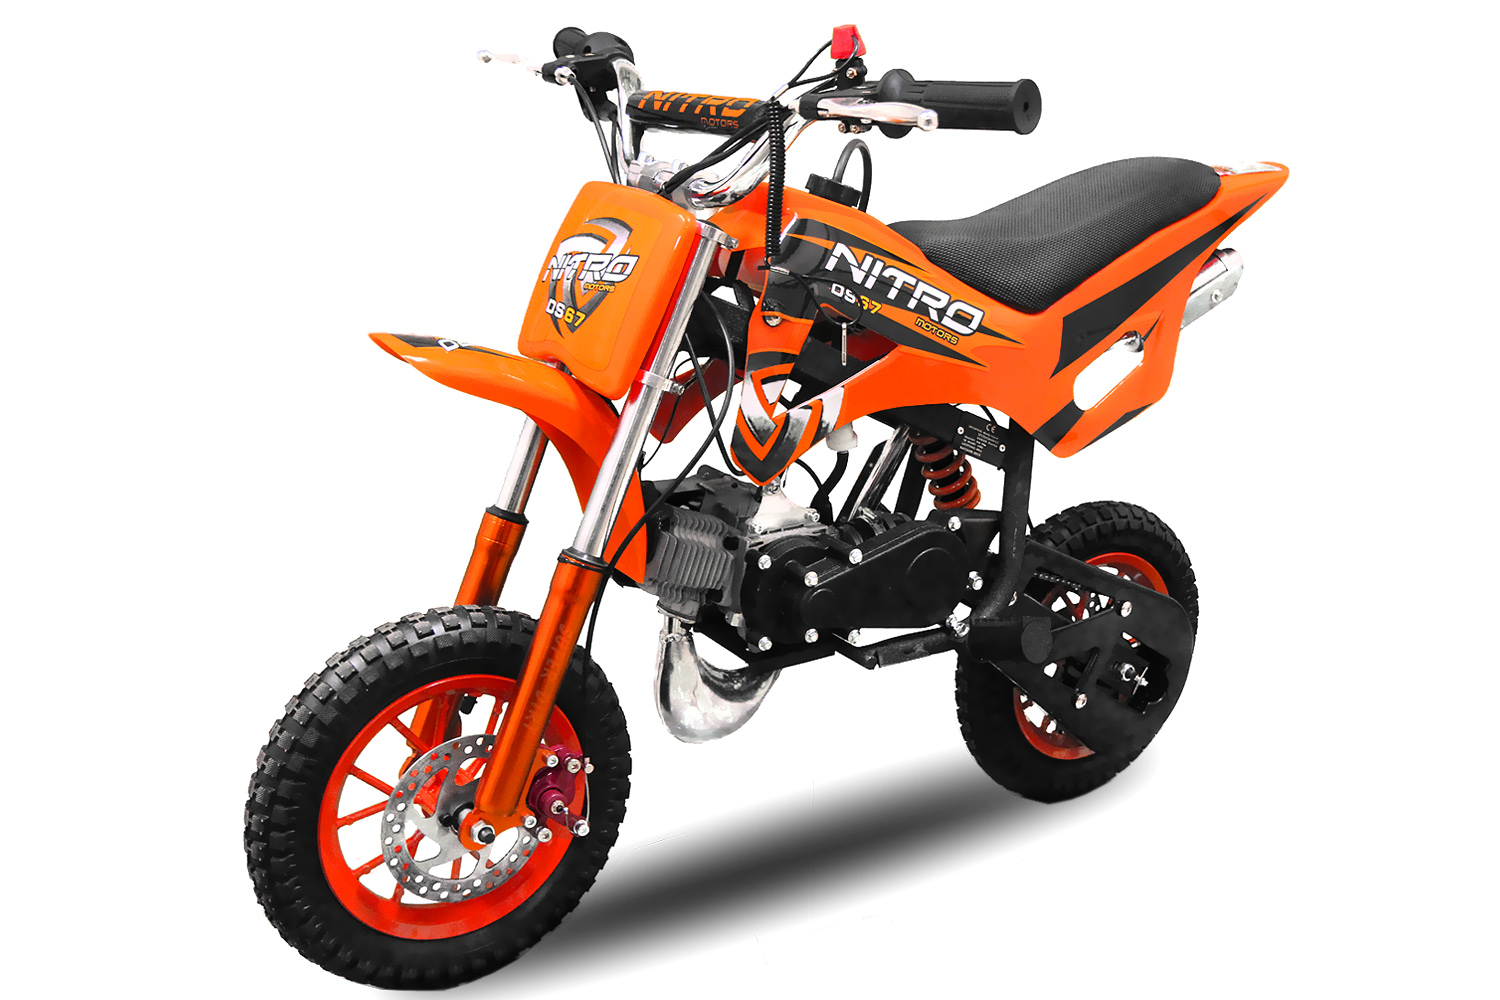 nitro mini dirt bike 50cc automatic disc brakes kill switch 7 wheels twin exhaust. Black Bedroom Furniture Sets. Home Design Ideas